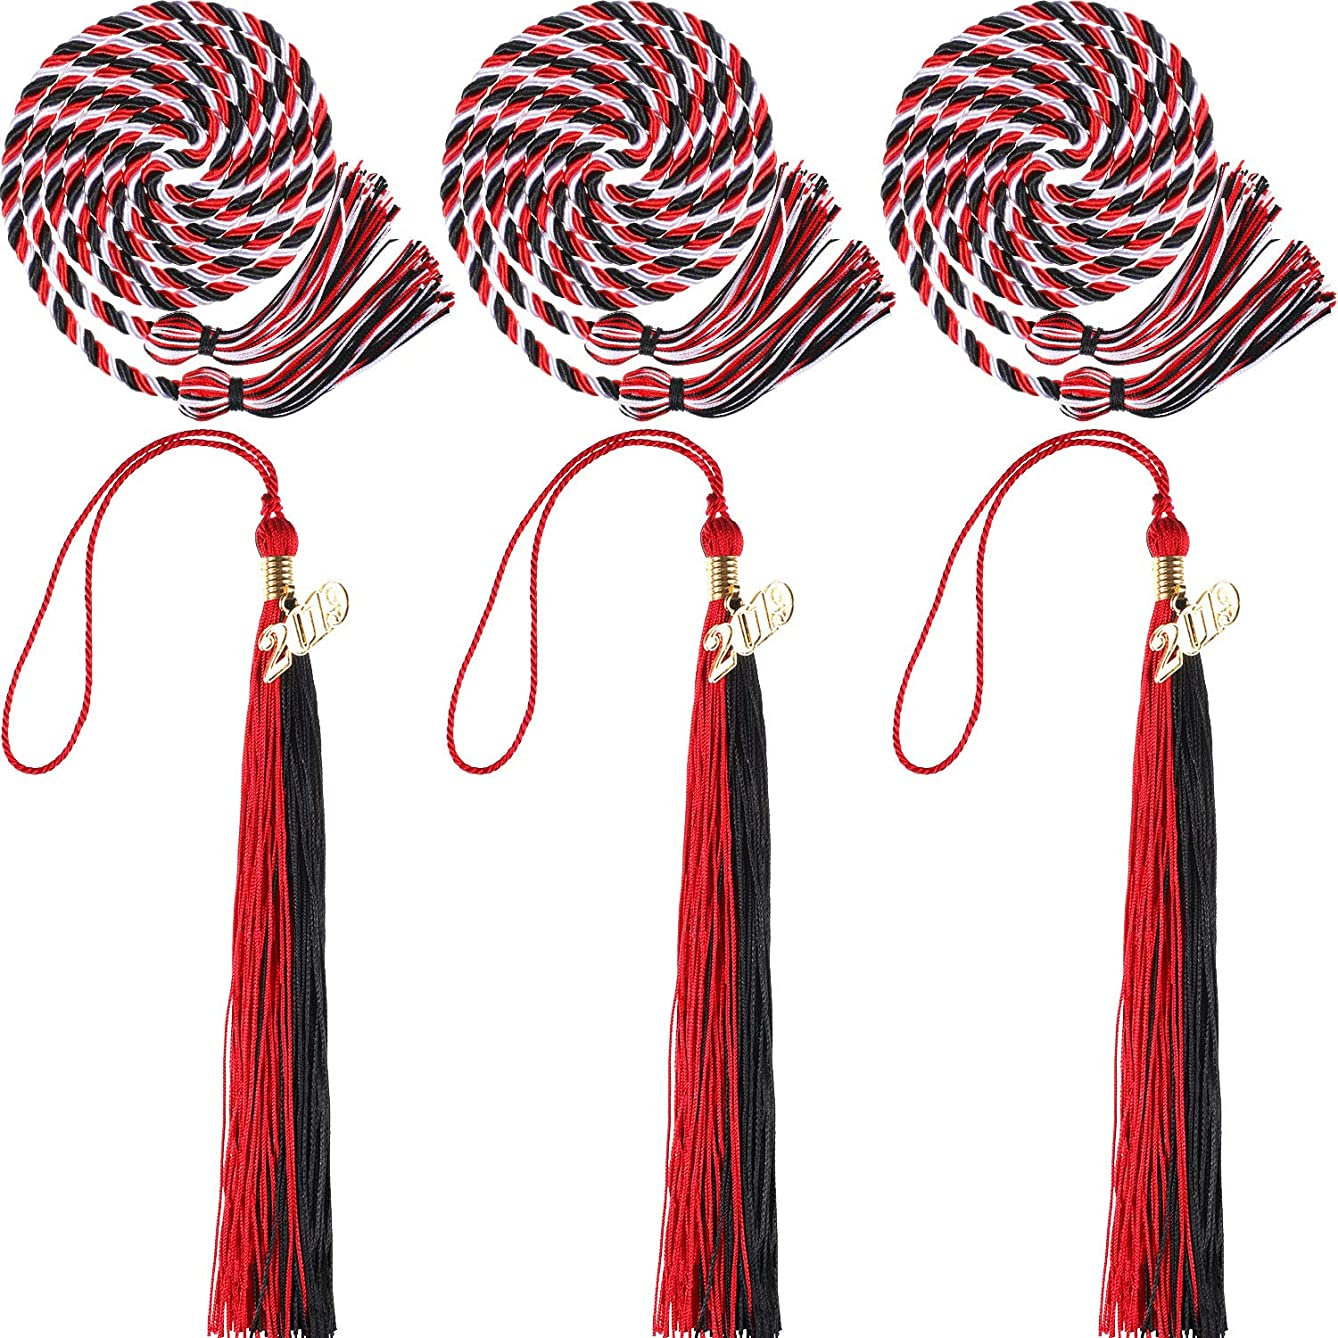 3 Pieces 2019 Graduation Tassels and 3 Pieces Graduation Cords Polyester Yarn Honor Cords Grad Party Tassel Cord Decoration for Party Supplies (Mixed Color)